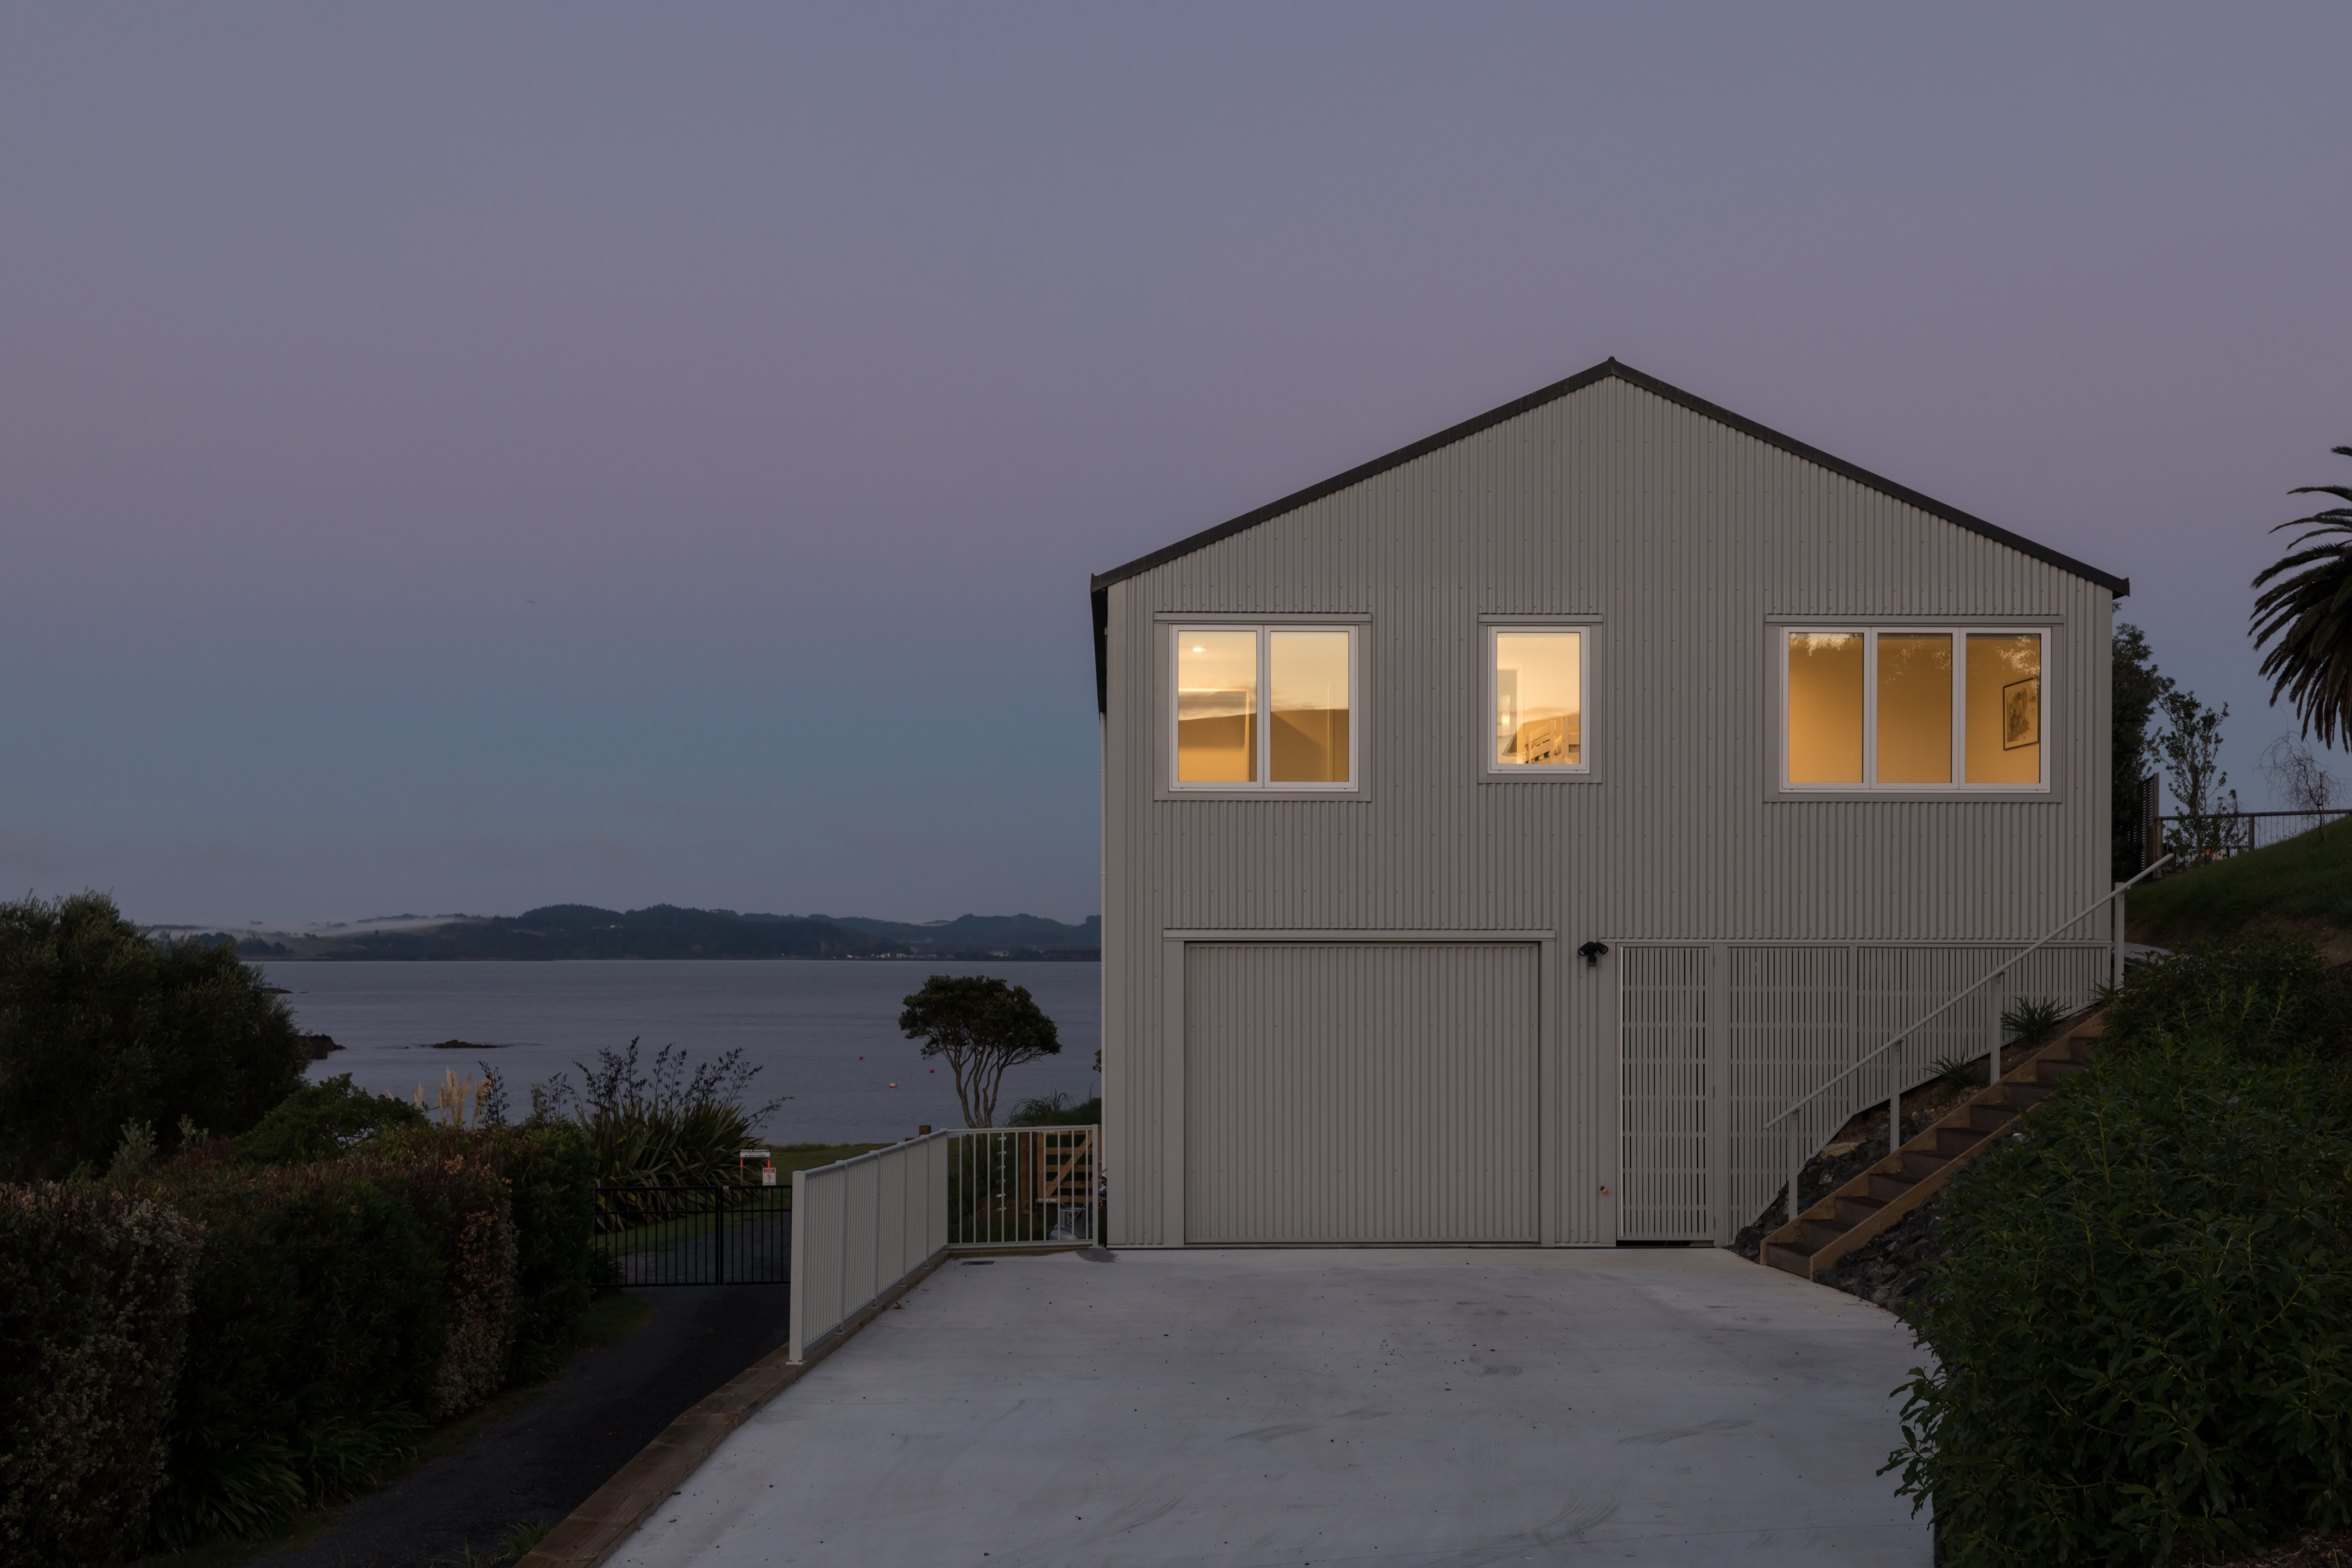 Dusk light shows this new gable-roofed beach house with sea views.